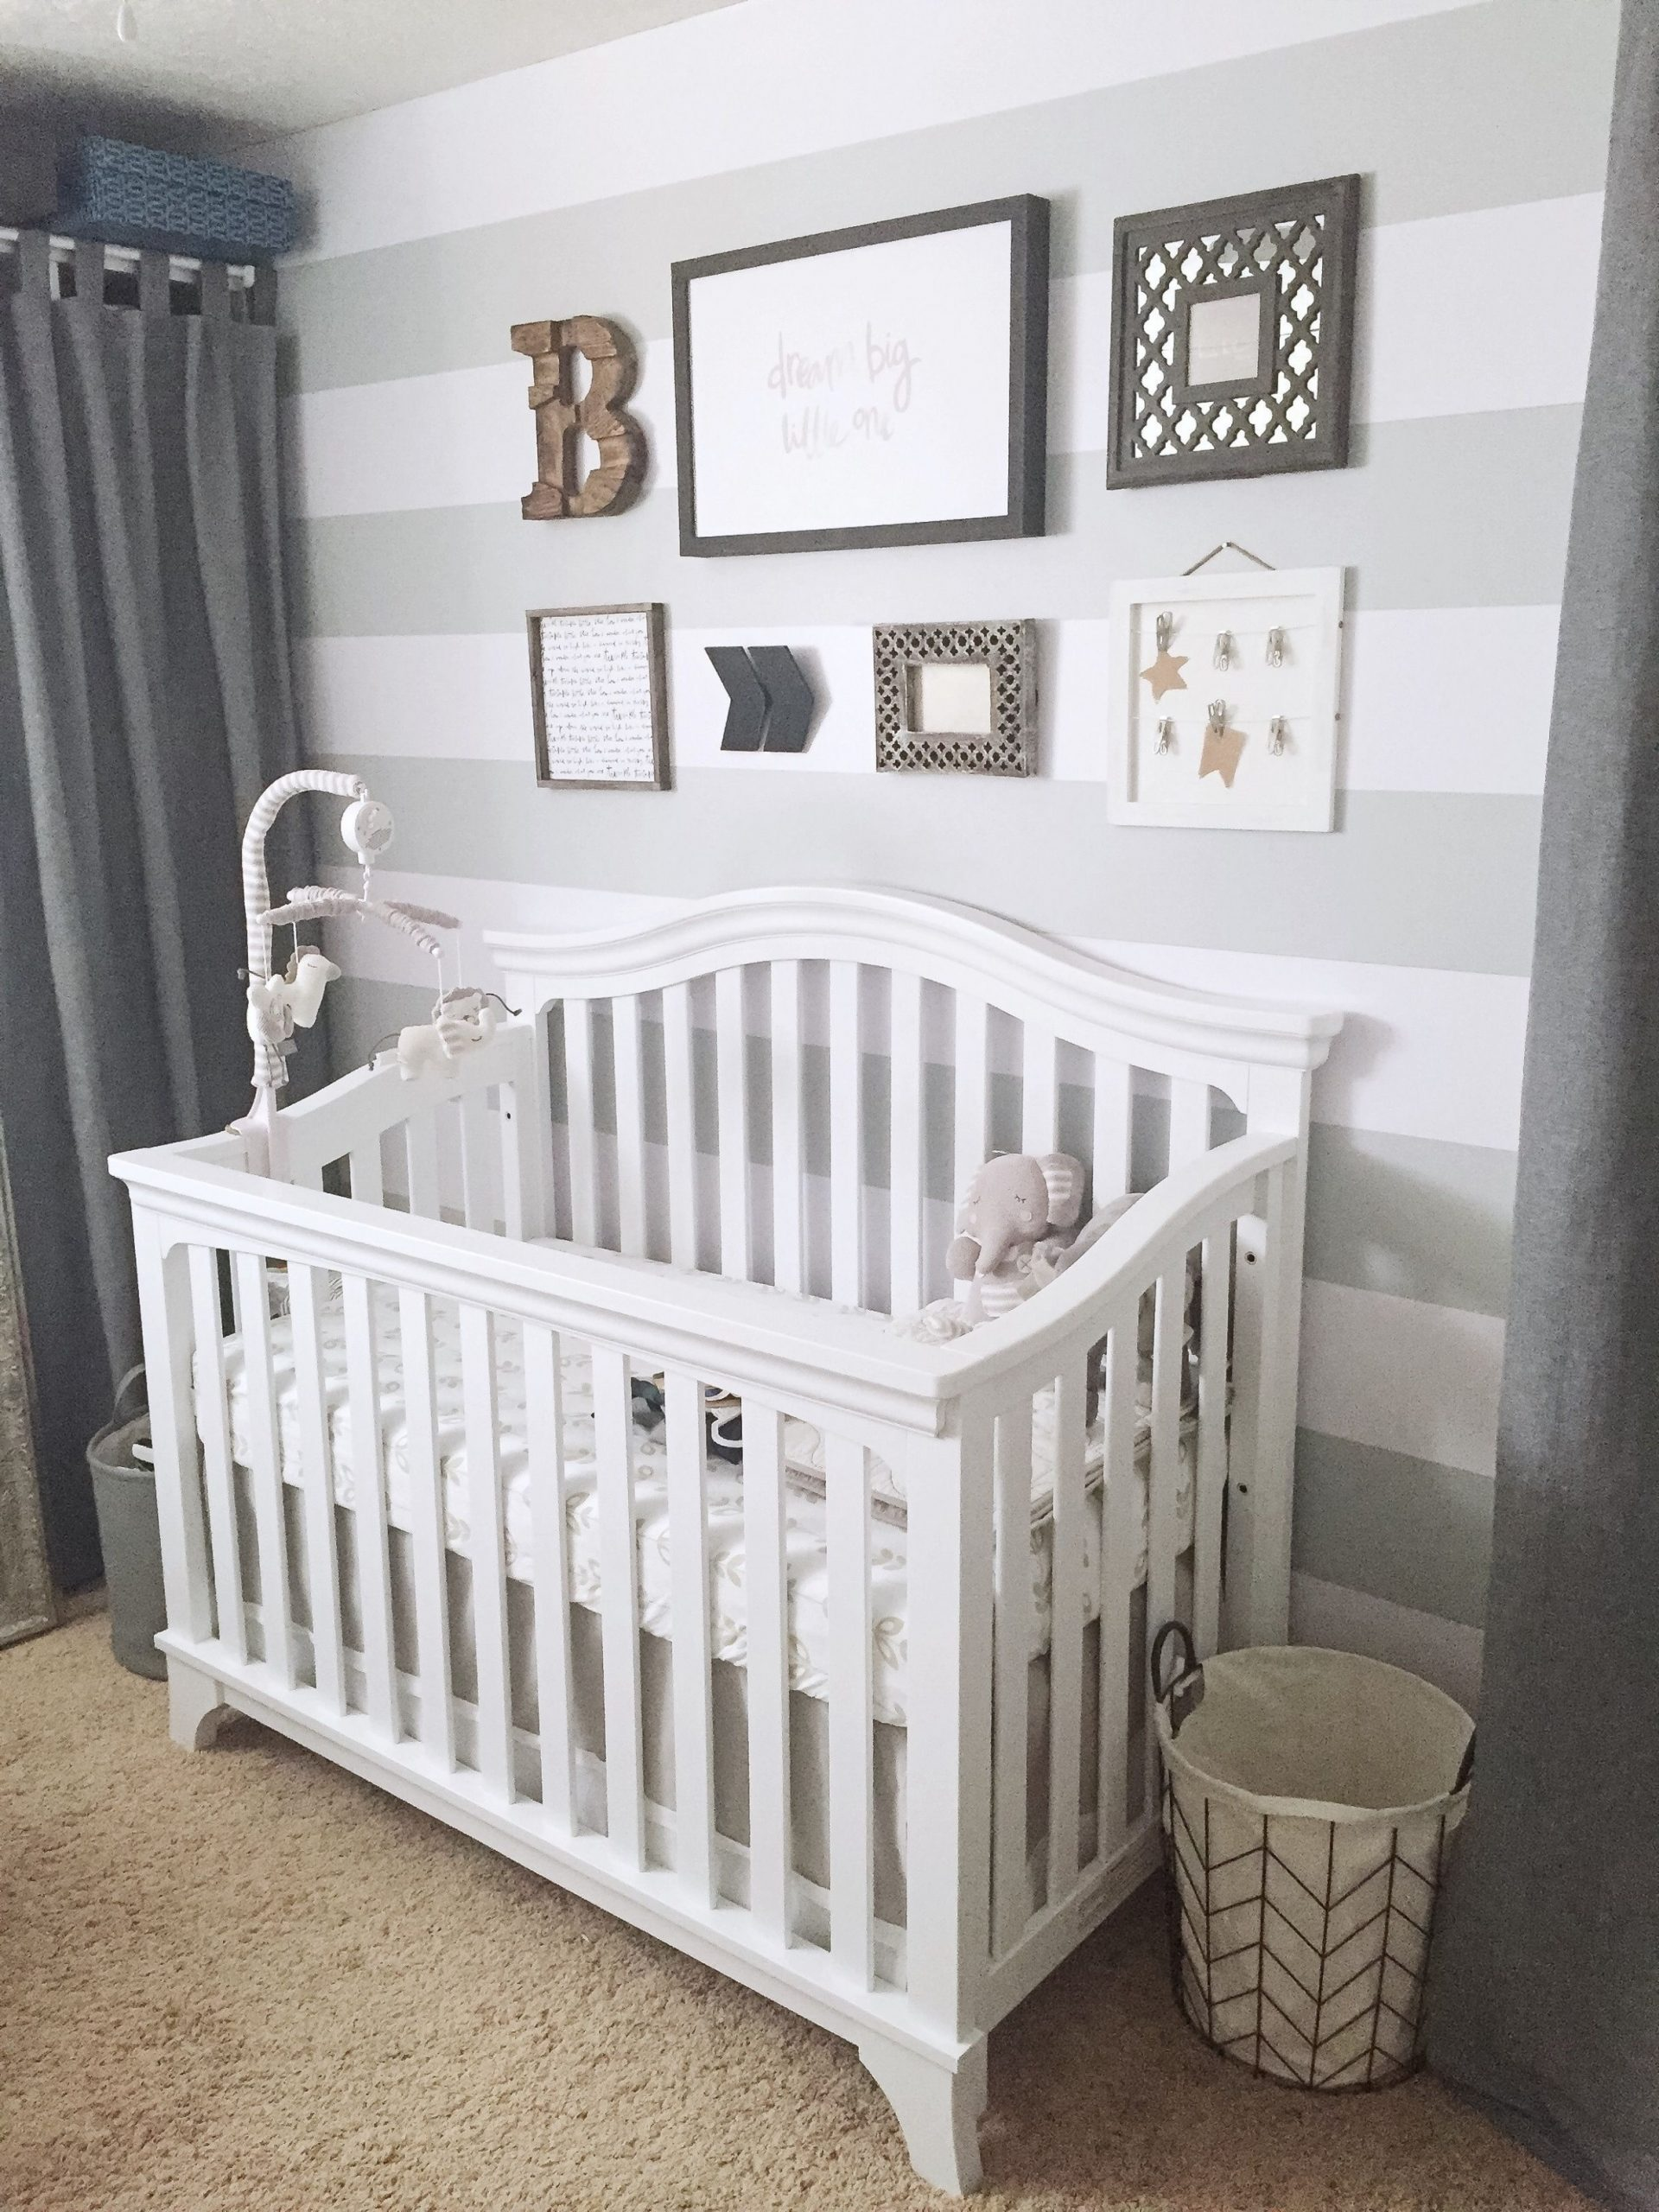 How to Transform a Small Room Into the Perfect Baby Nursery  - Baby Room For Boy